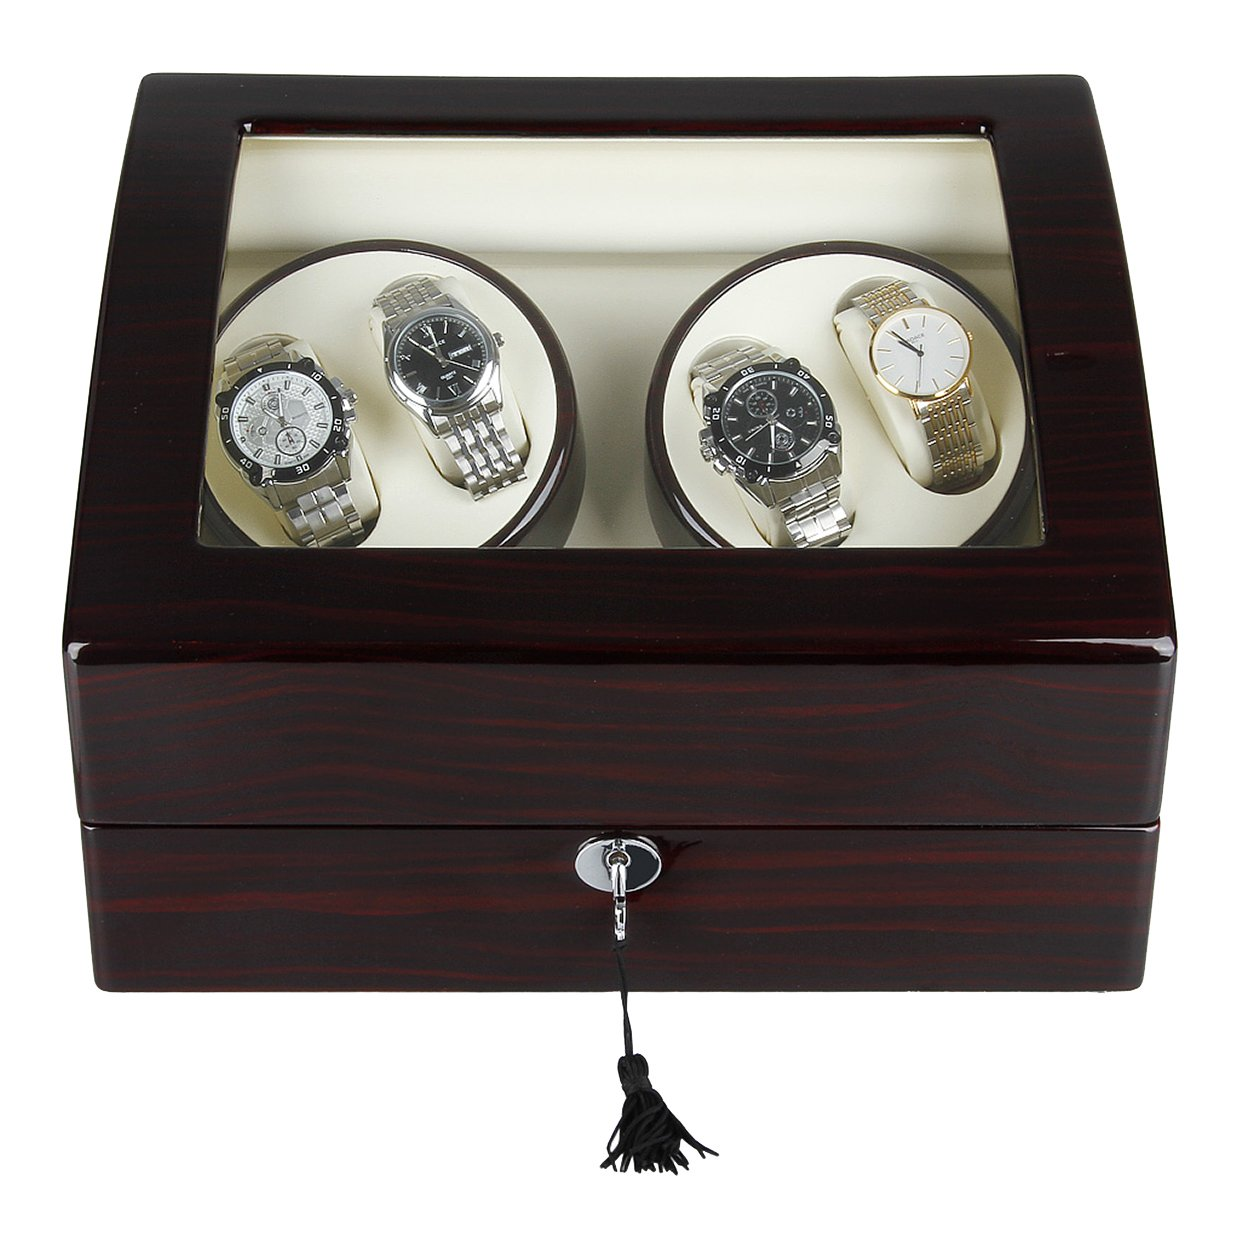 Excelvan Automatic Watch Winder Wooden Box Piano Paint with 4 Rotation Modes (Brown Wooden Box 4+6)